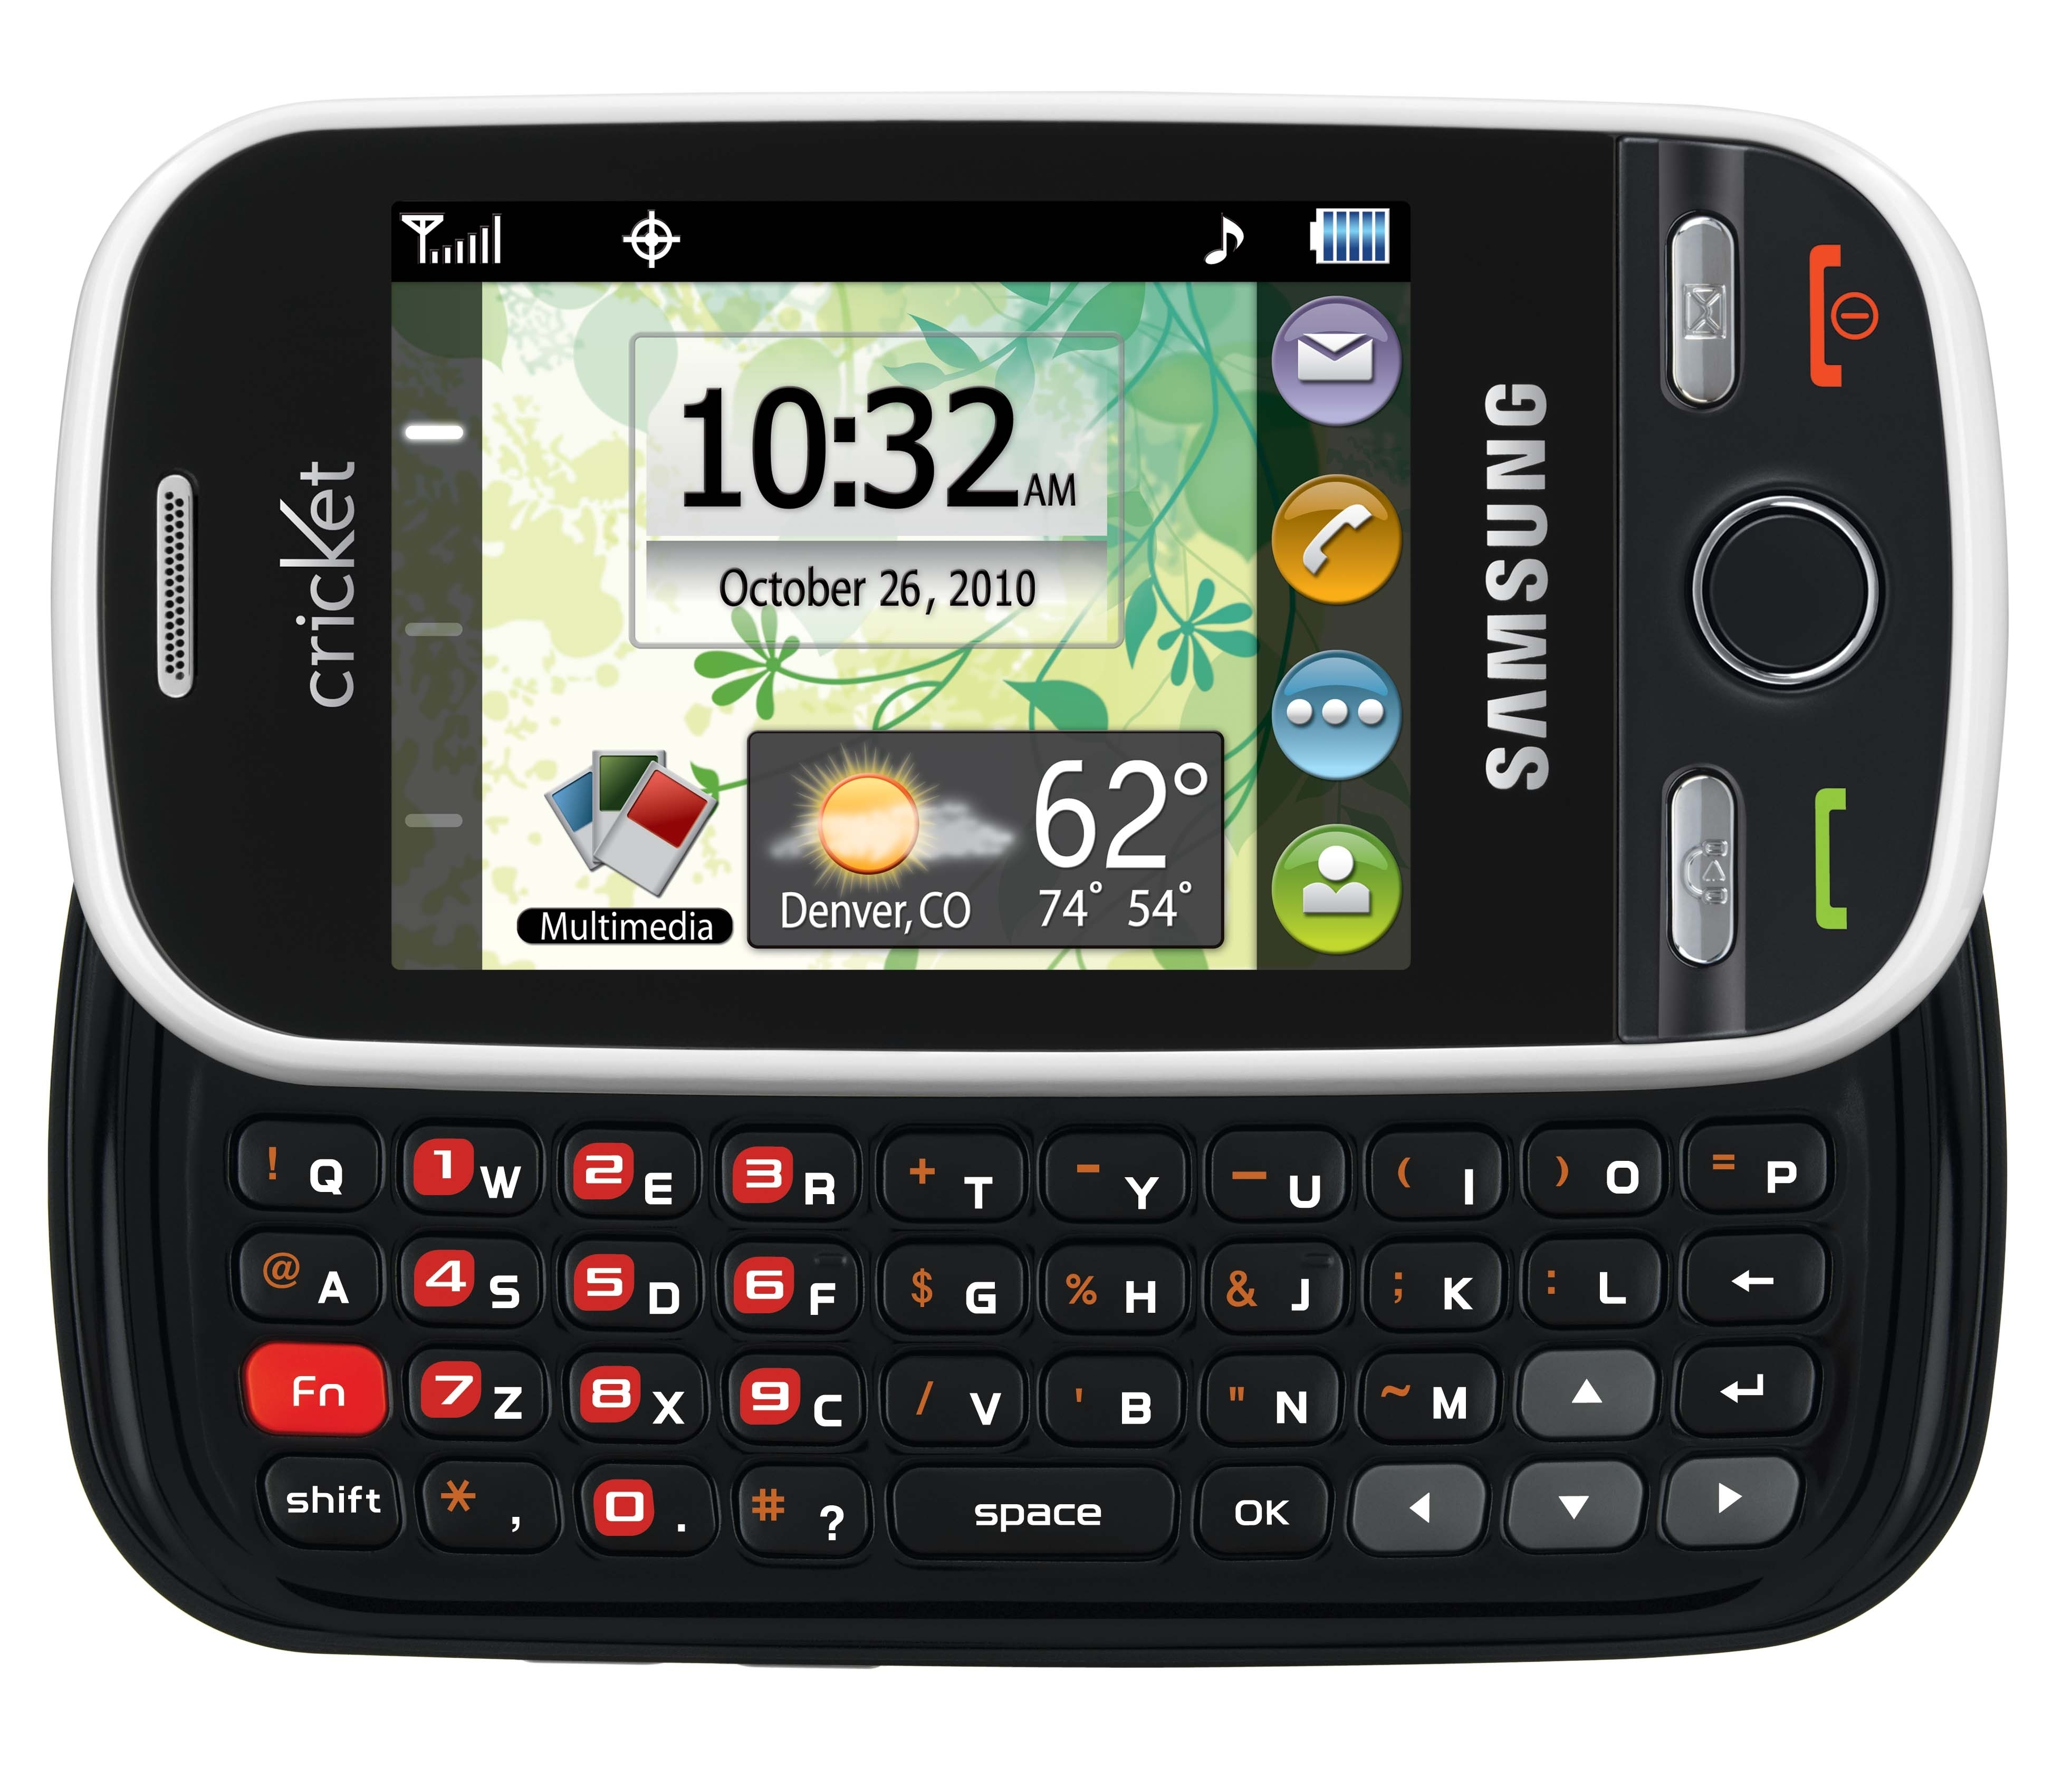 Cricket's Samsung Messager Touch has a full keyboard.